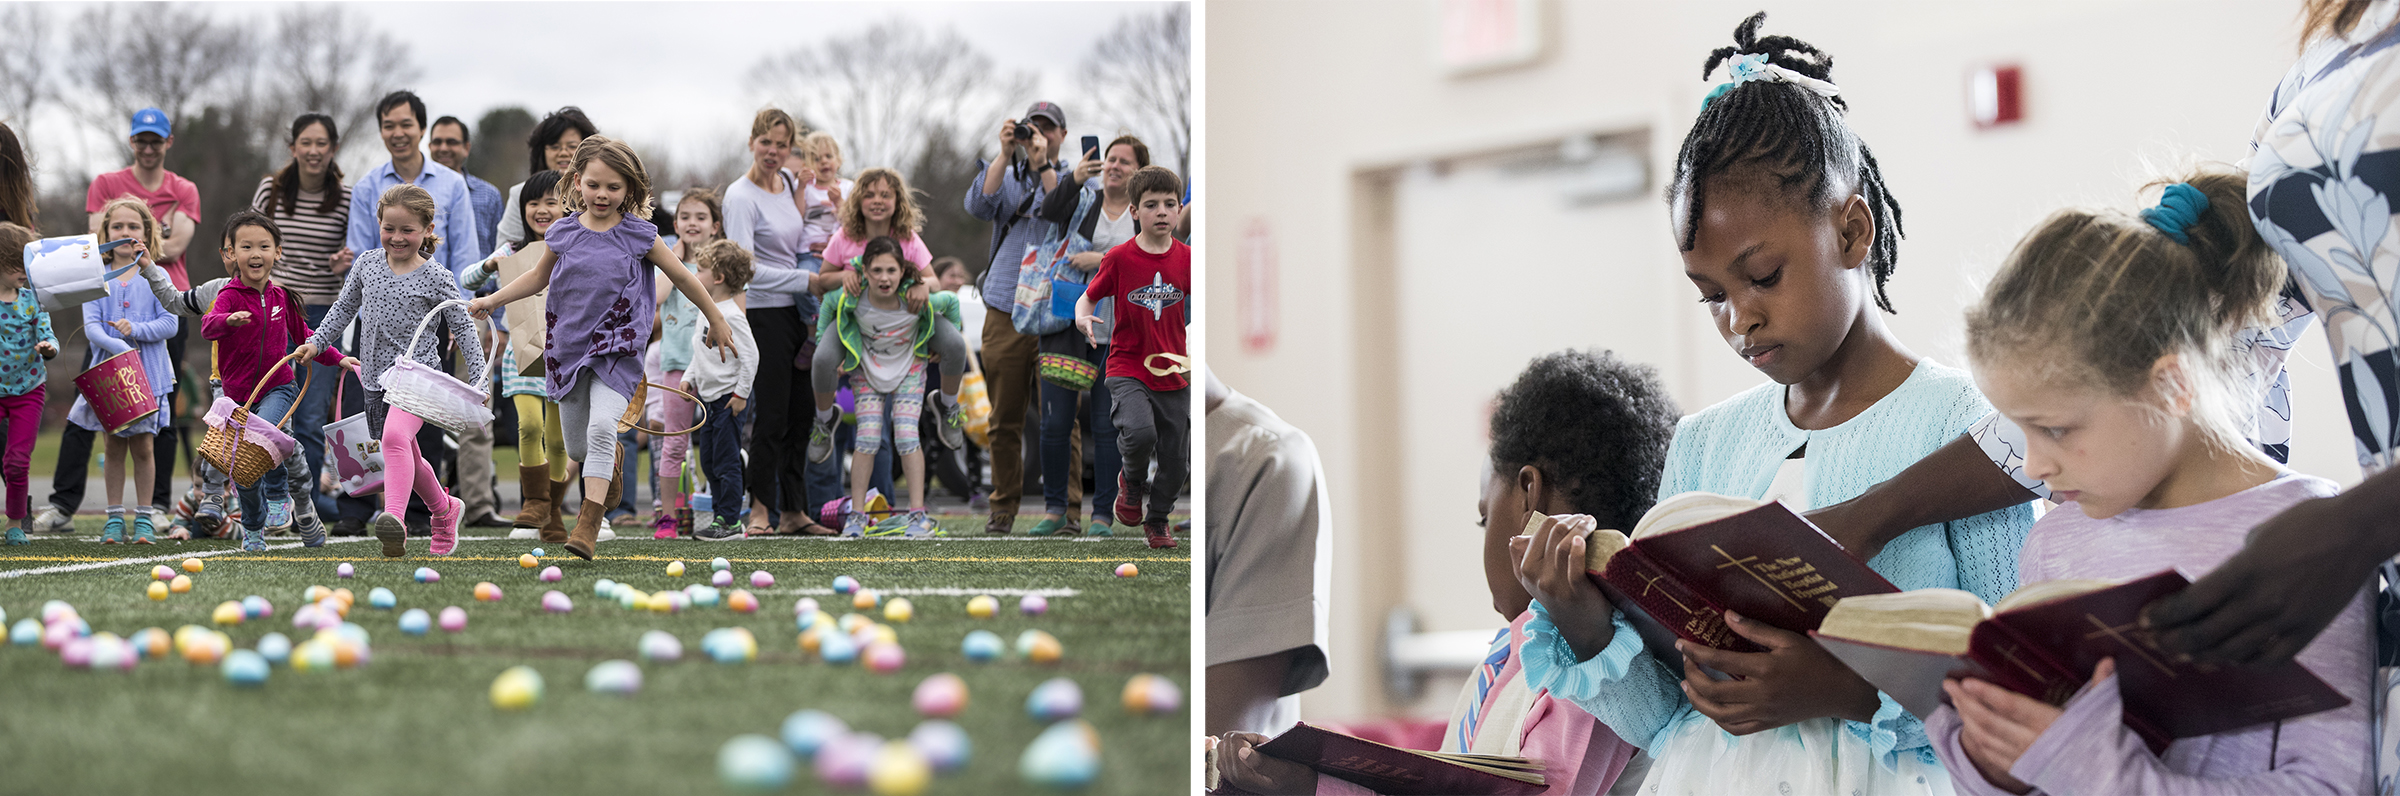 (Left) Emerson Santoro, 6, of Concord, center, leads the charge to find eggs during the 3rd annual Easter Egg Hunt at Memorial Field on April 19, 2019. (Right) Khadijah Fitten, 10, of Framingham, reads the Bible during the Easter Community Celebration at the Greater Framingham Community Church on April 21, 2019.